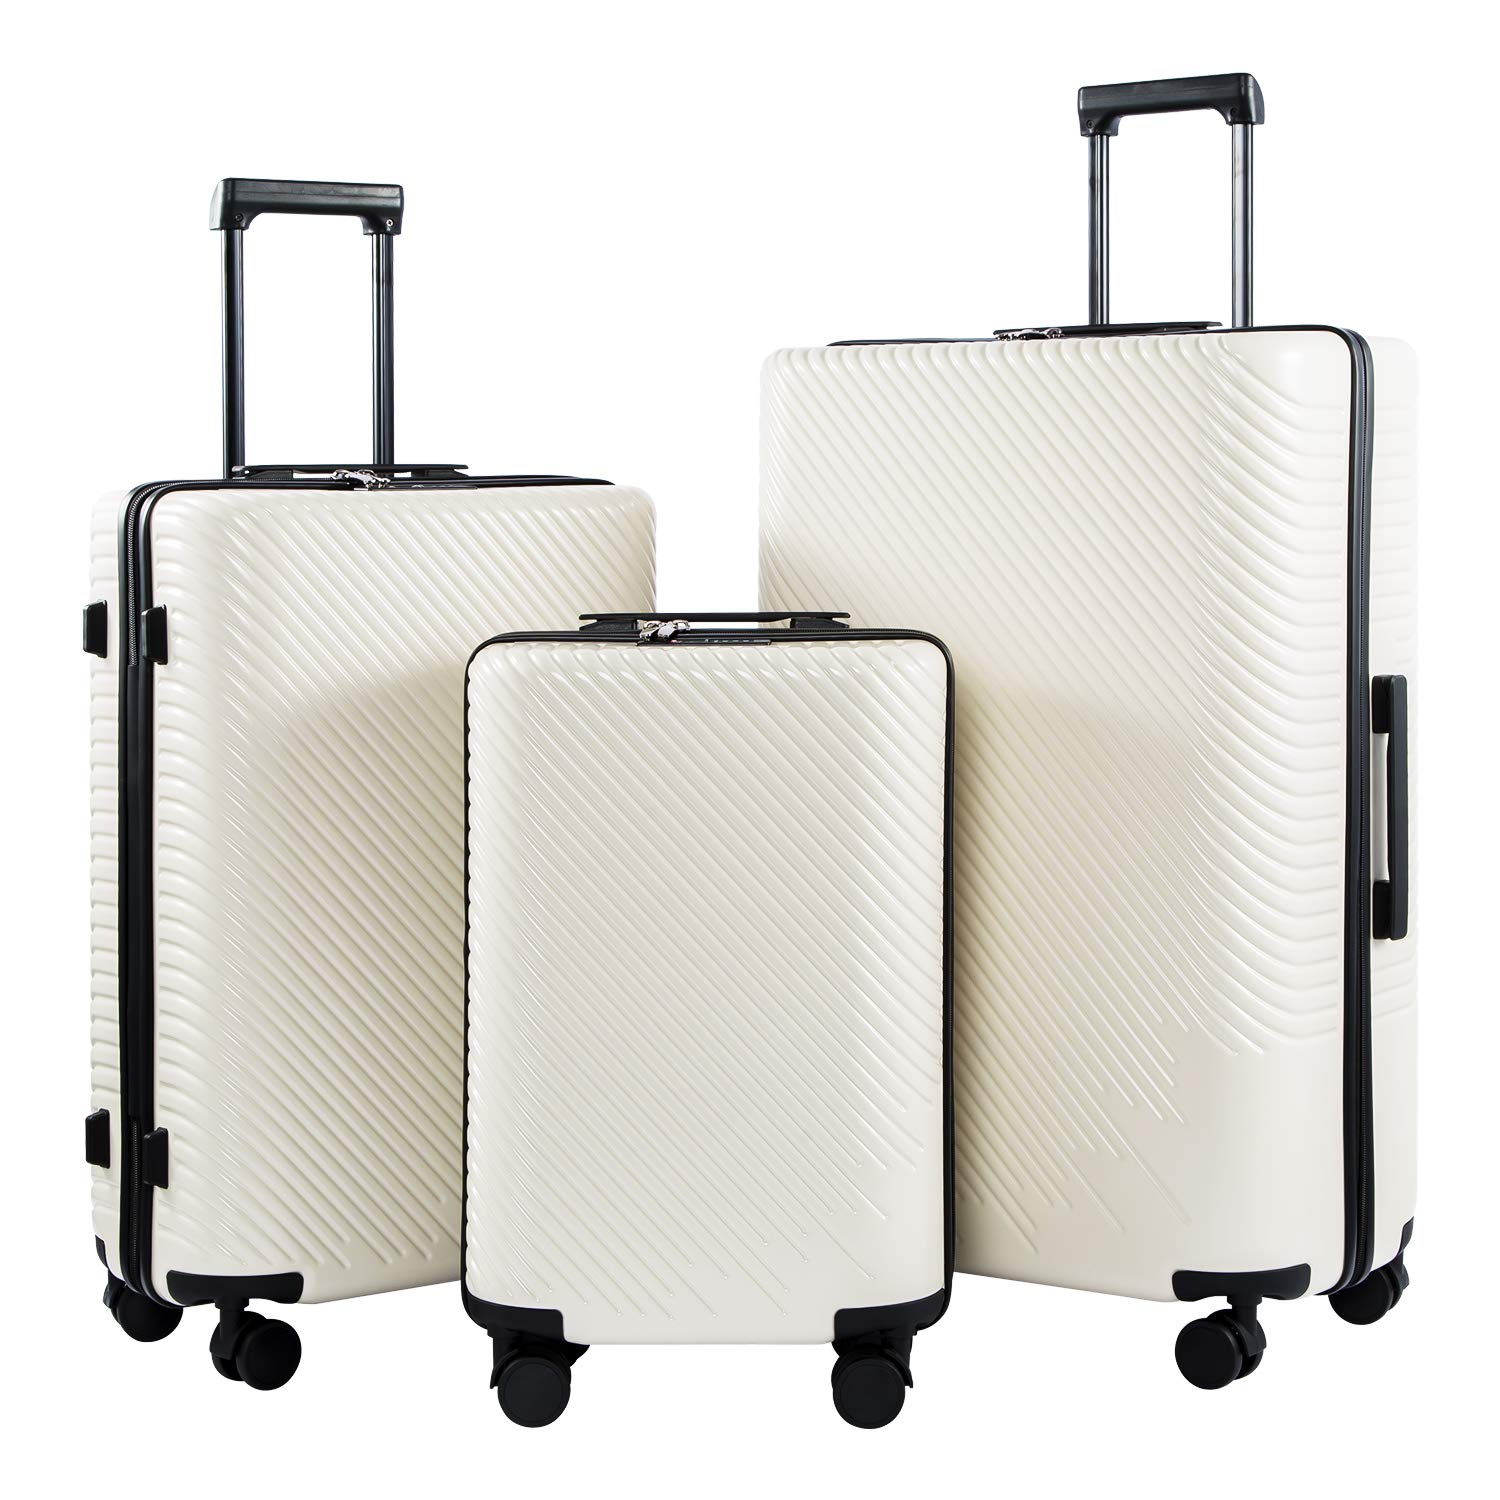 Coolife Luggage 3 Piece Sets PC+ABS Spinner Suitcase carry on Fashion Black, One/_Size